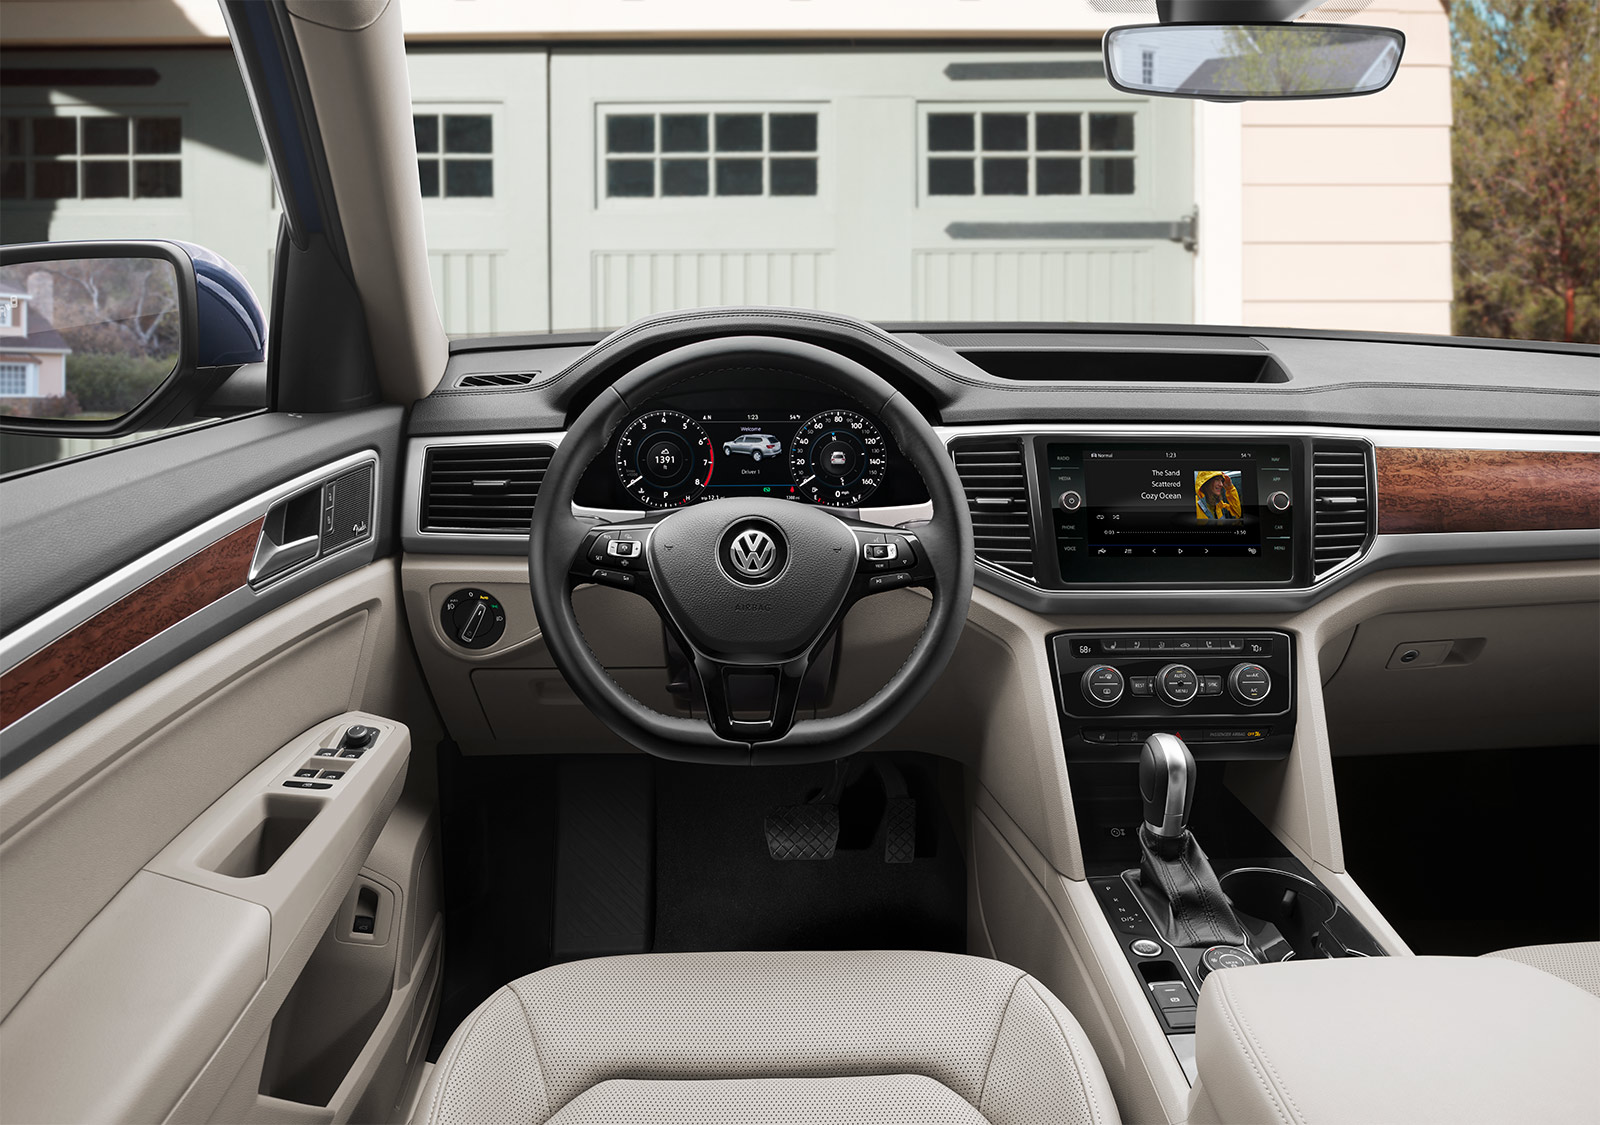 Interior of the 2019 Volkswagen Atlas